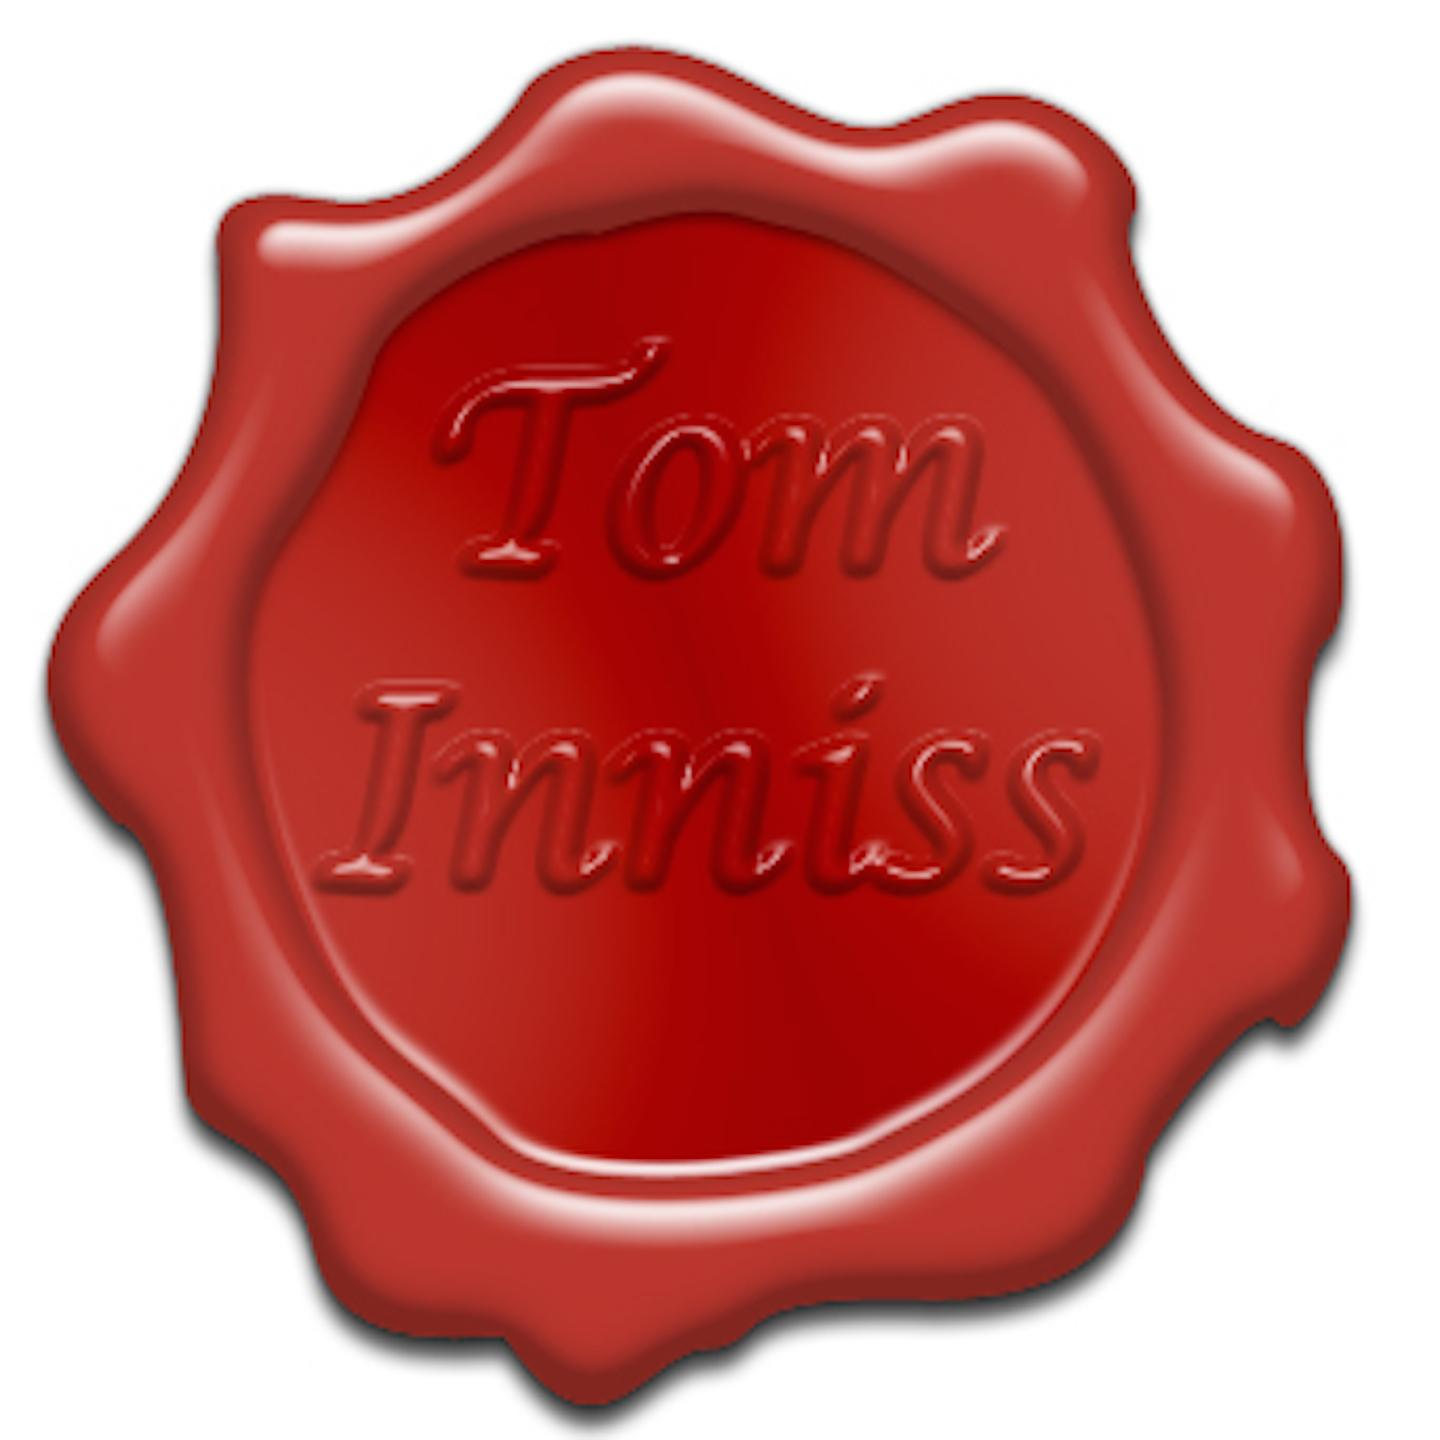 The Tom Inniss Podcast